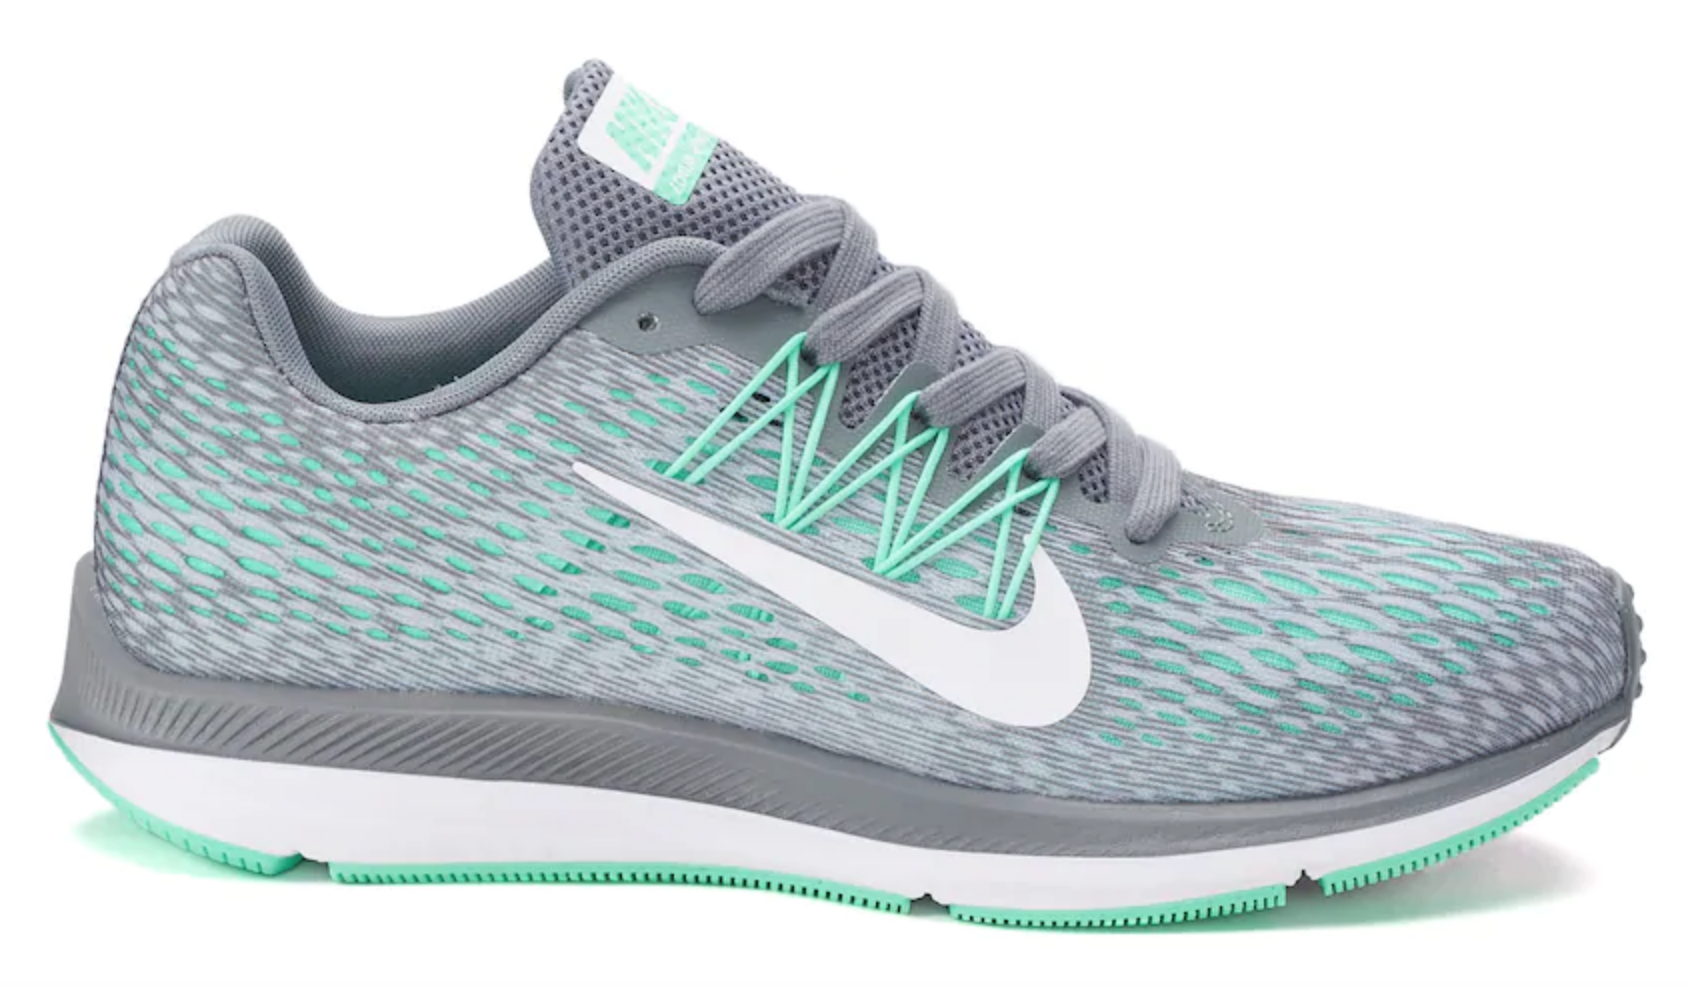 Nike running shoes in teal and gray.